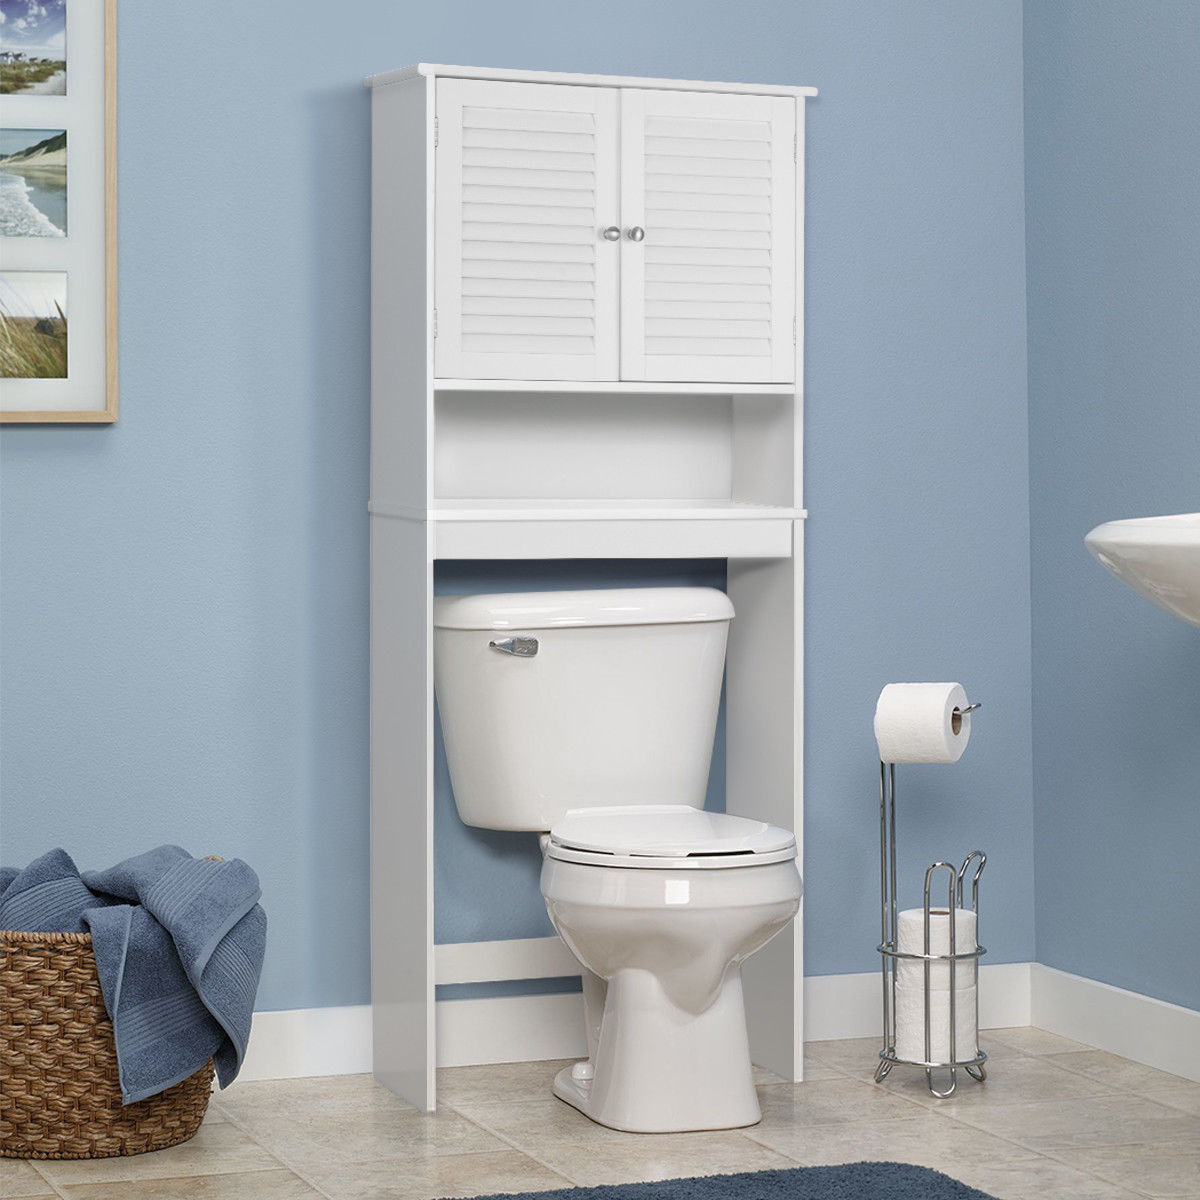 Superieur Gymax Bathroom Space Saver Over The Toilet Shelved Storage Cabinet  Organizer White